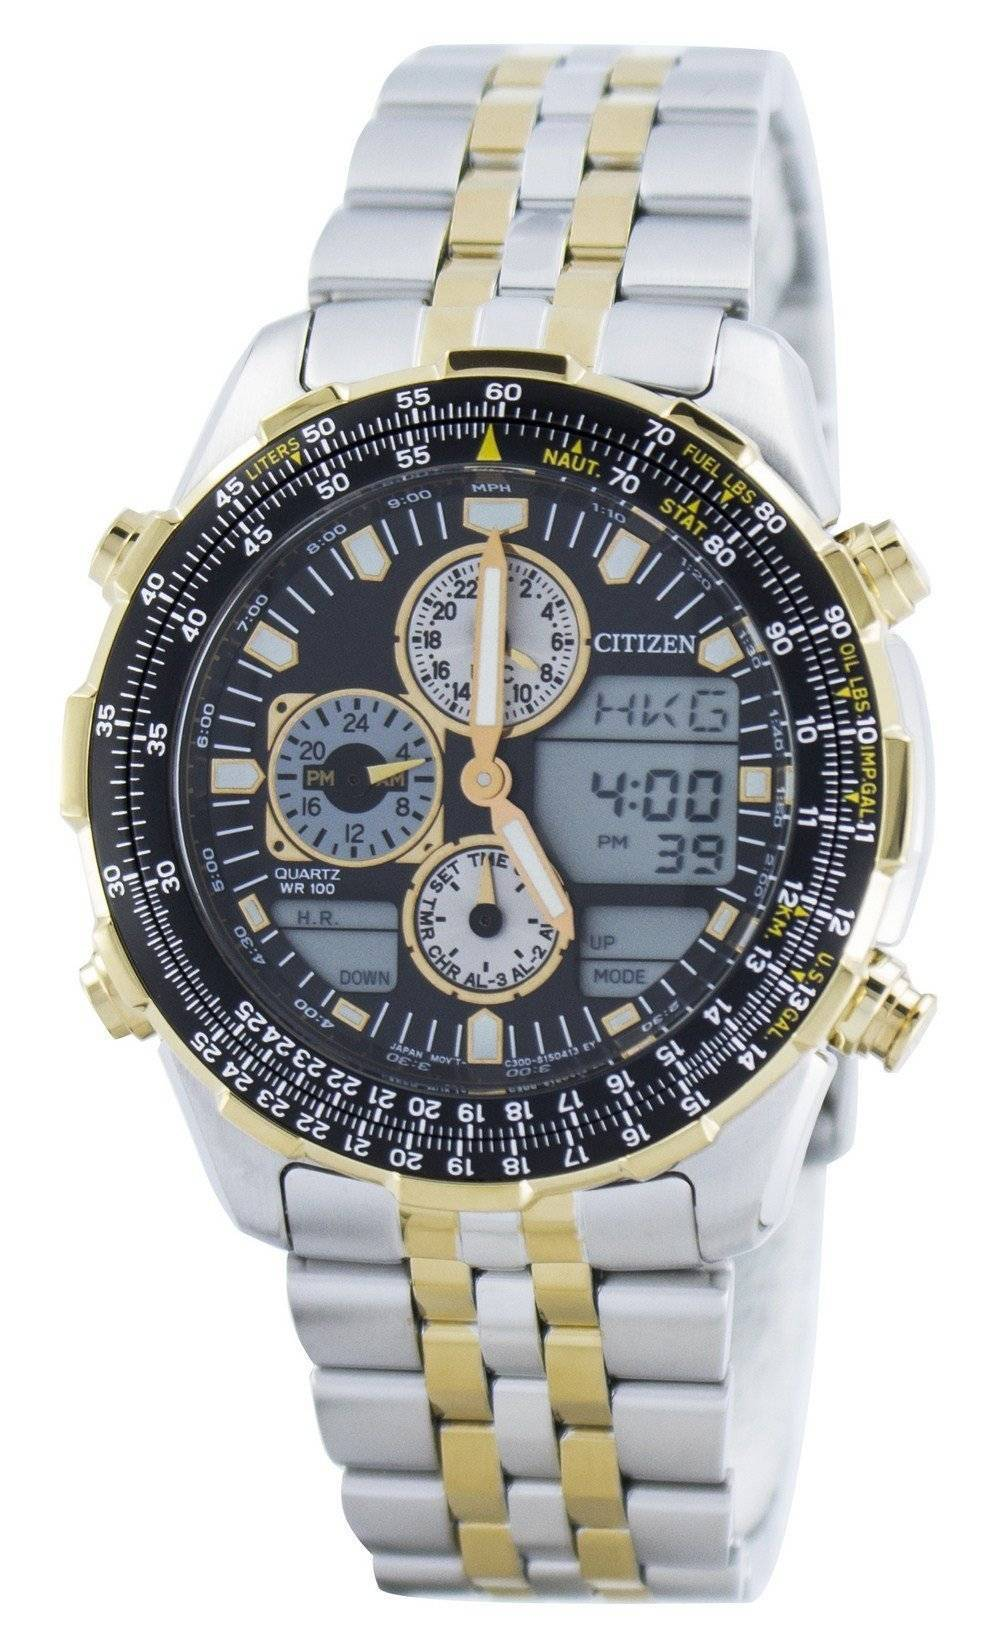 1ee7dd4ee0176 Citizen Navihawk Pilot Style Quartz Chronographe Analogique Digital World  Time JN0124-84E Montre Homme